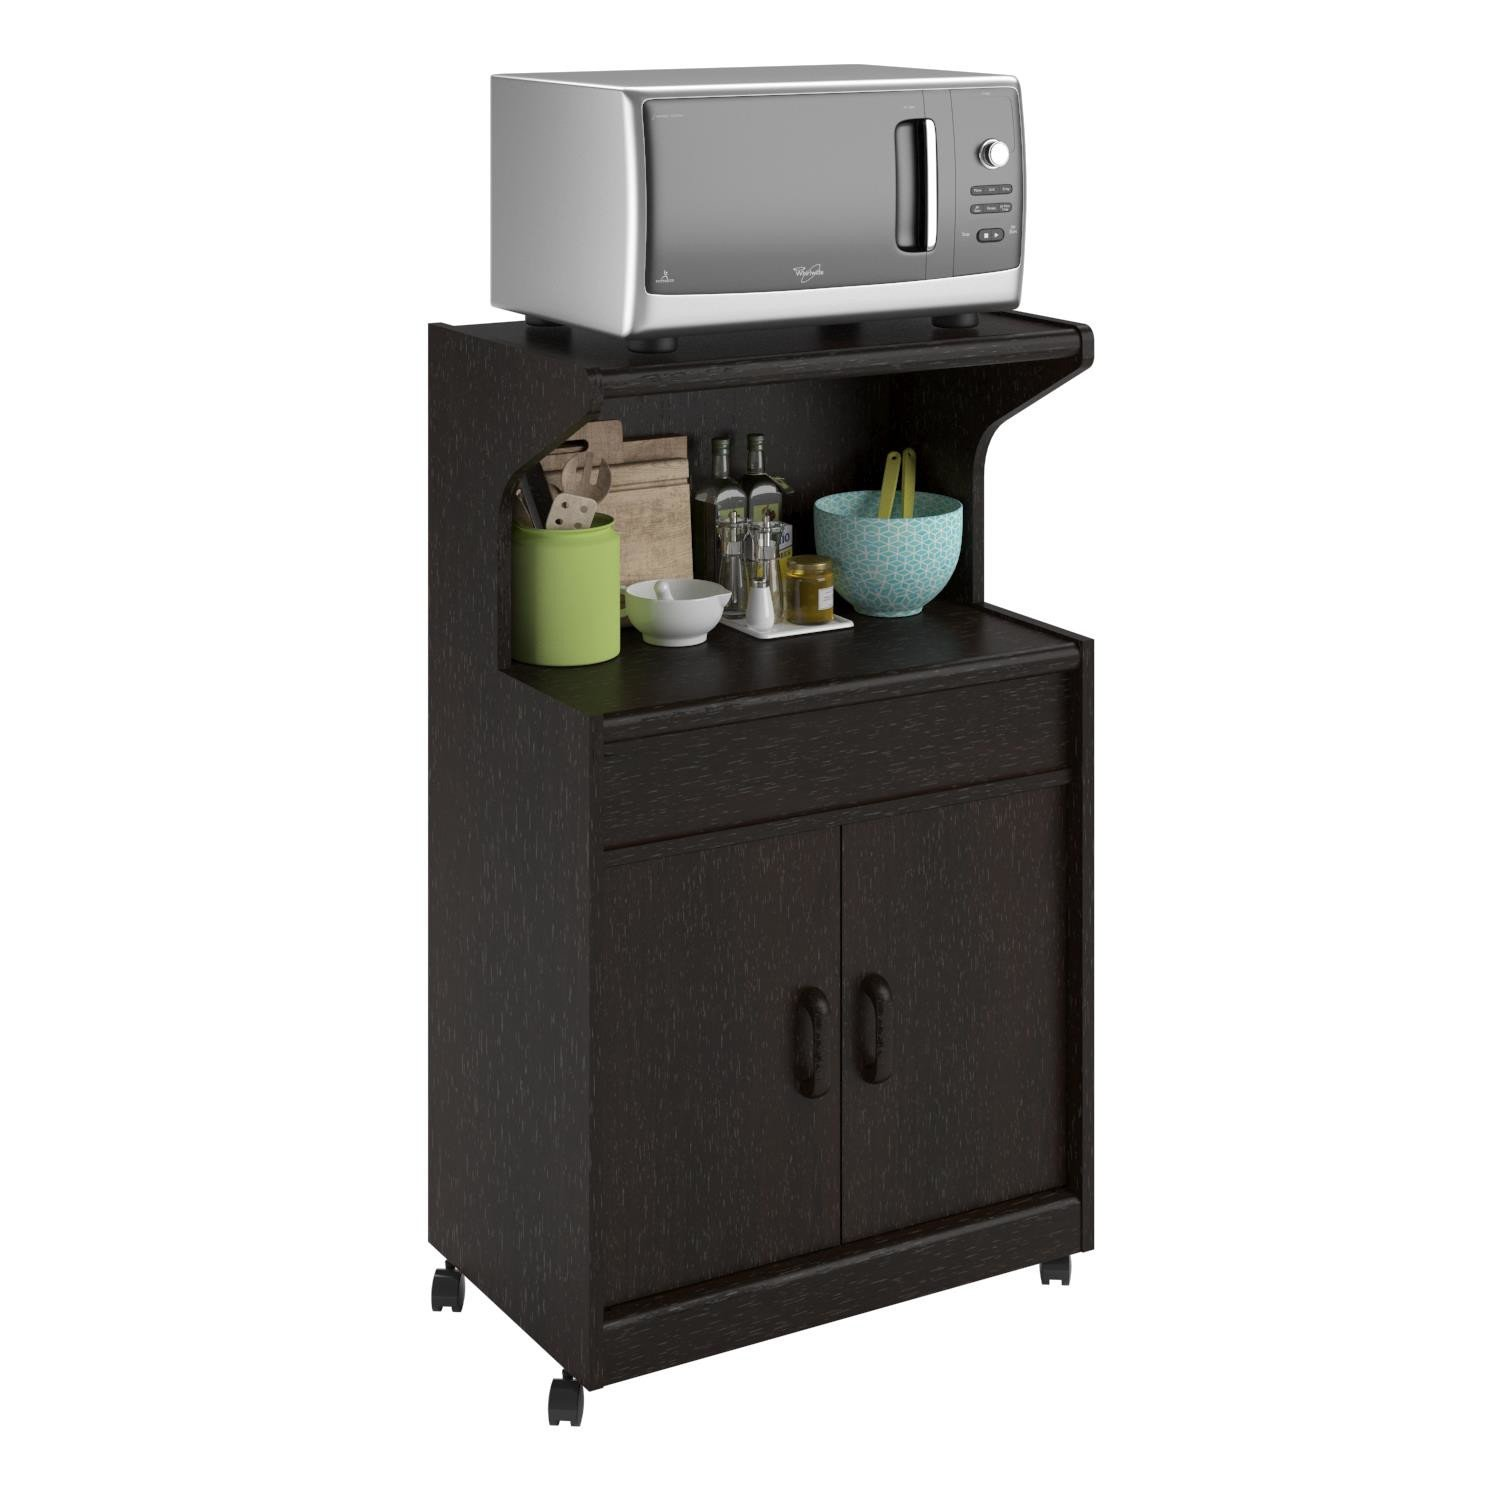 Amazon.com   Elegant Look Howland Microwave Cart With Cabinet And Drawer  Storage, Caster Wheeled   Kitchen Islands U0026 Carts